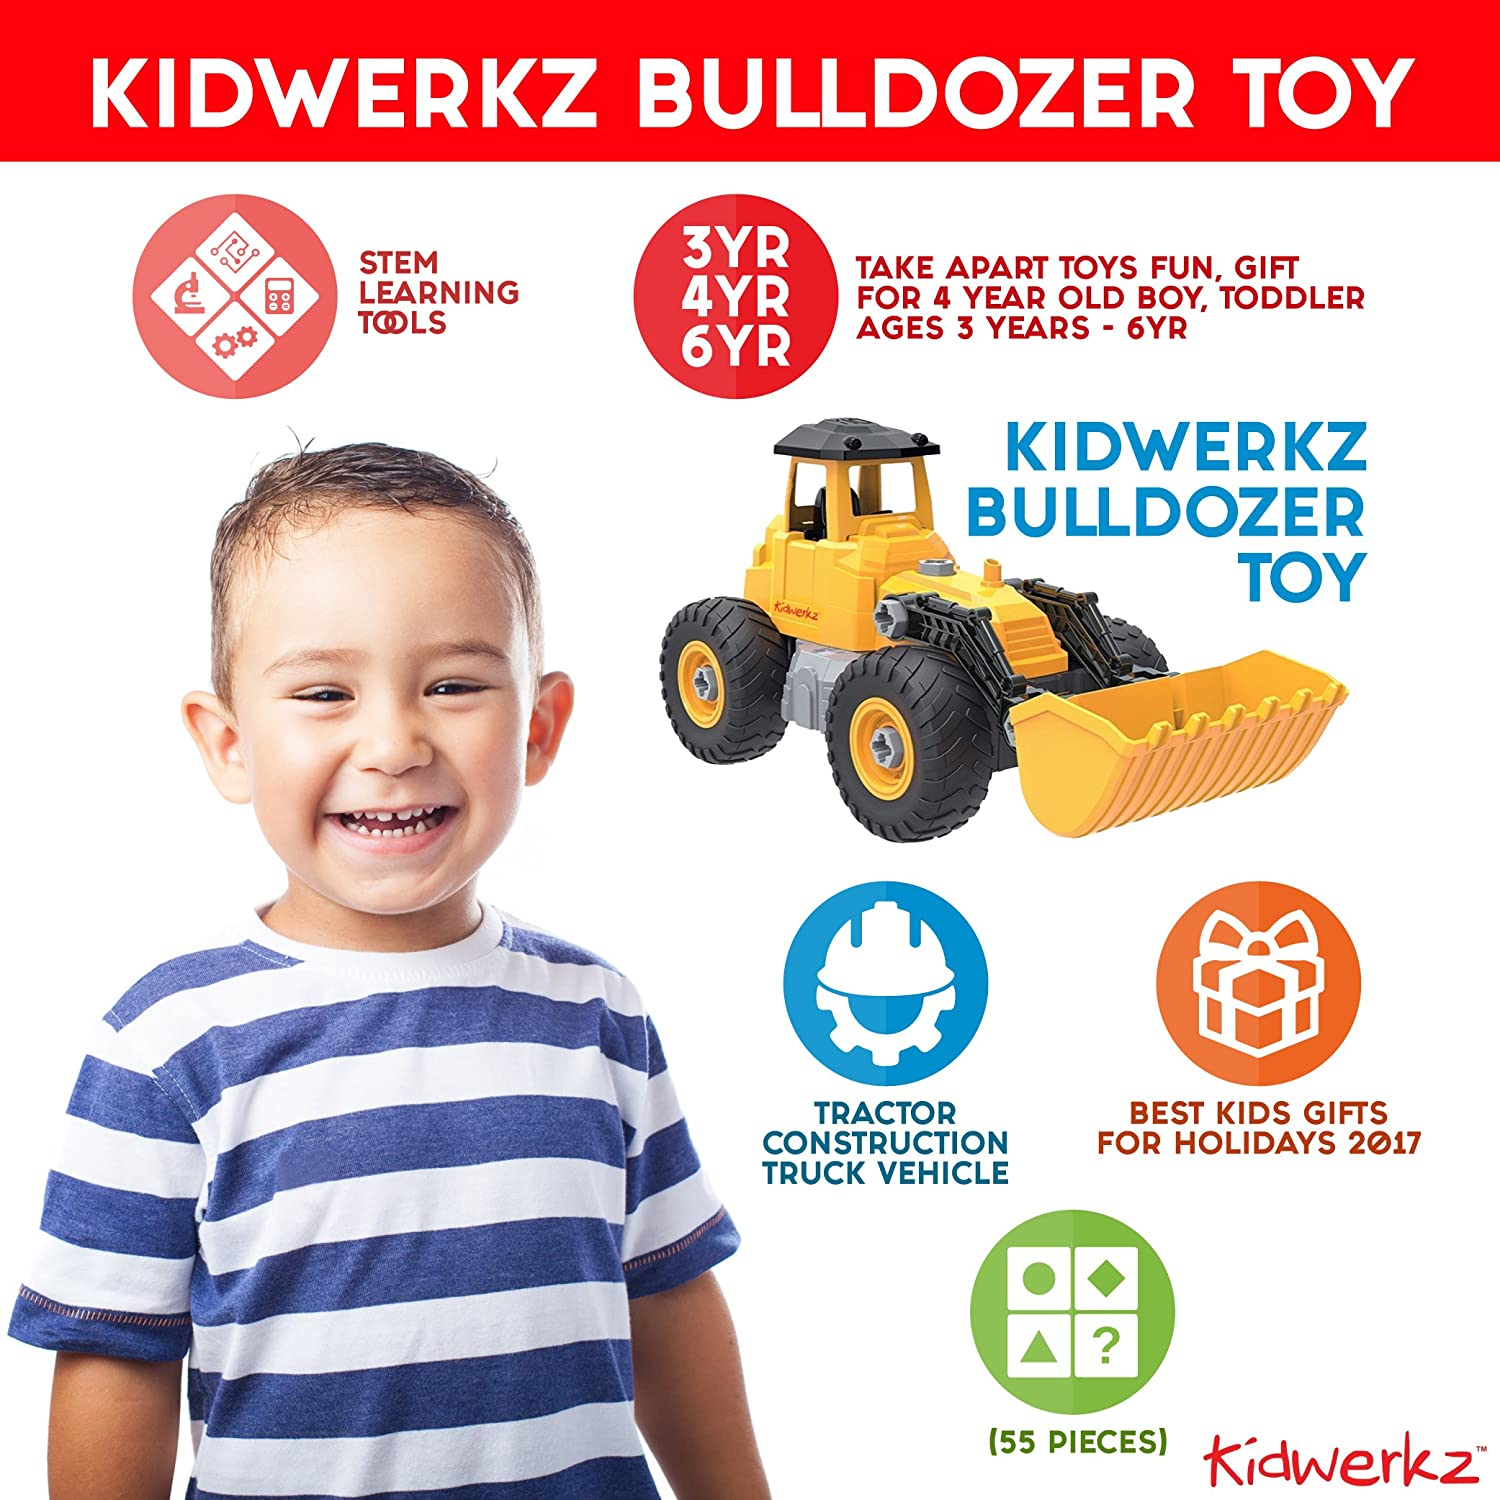 Amazon Kidwerkz Bulldozer Toy Take Apart Toys Fun Gift for